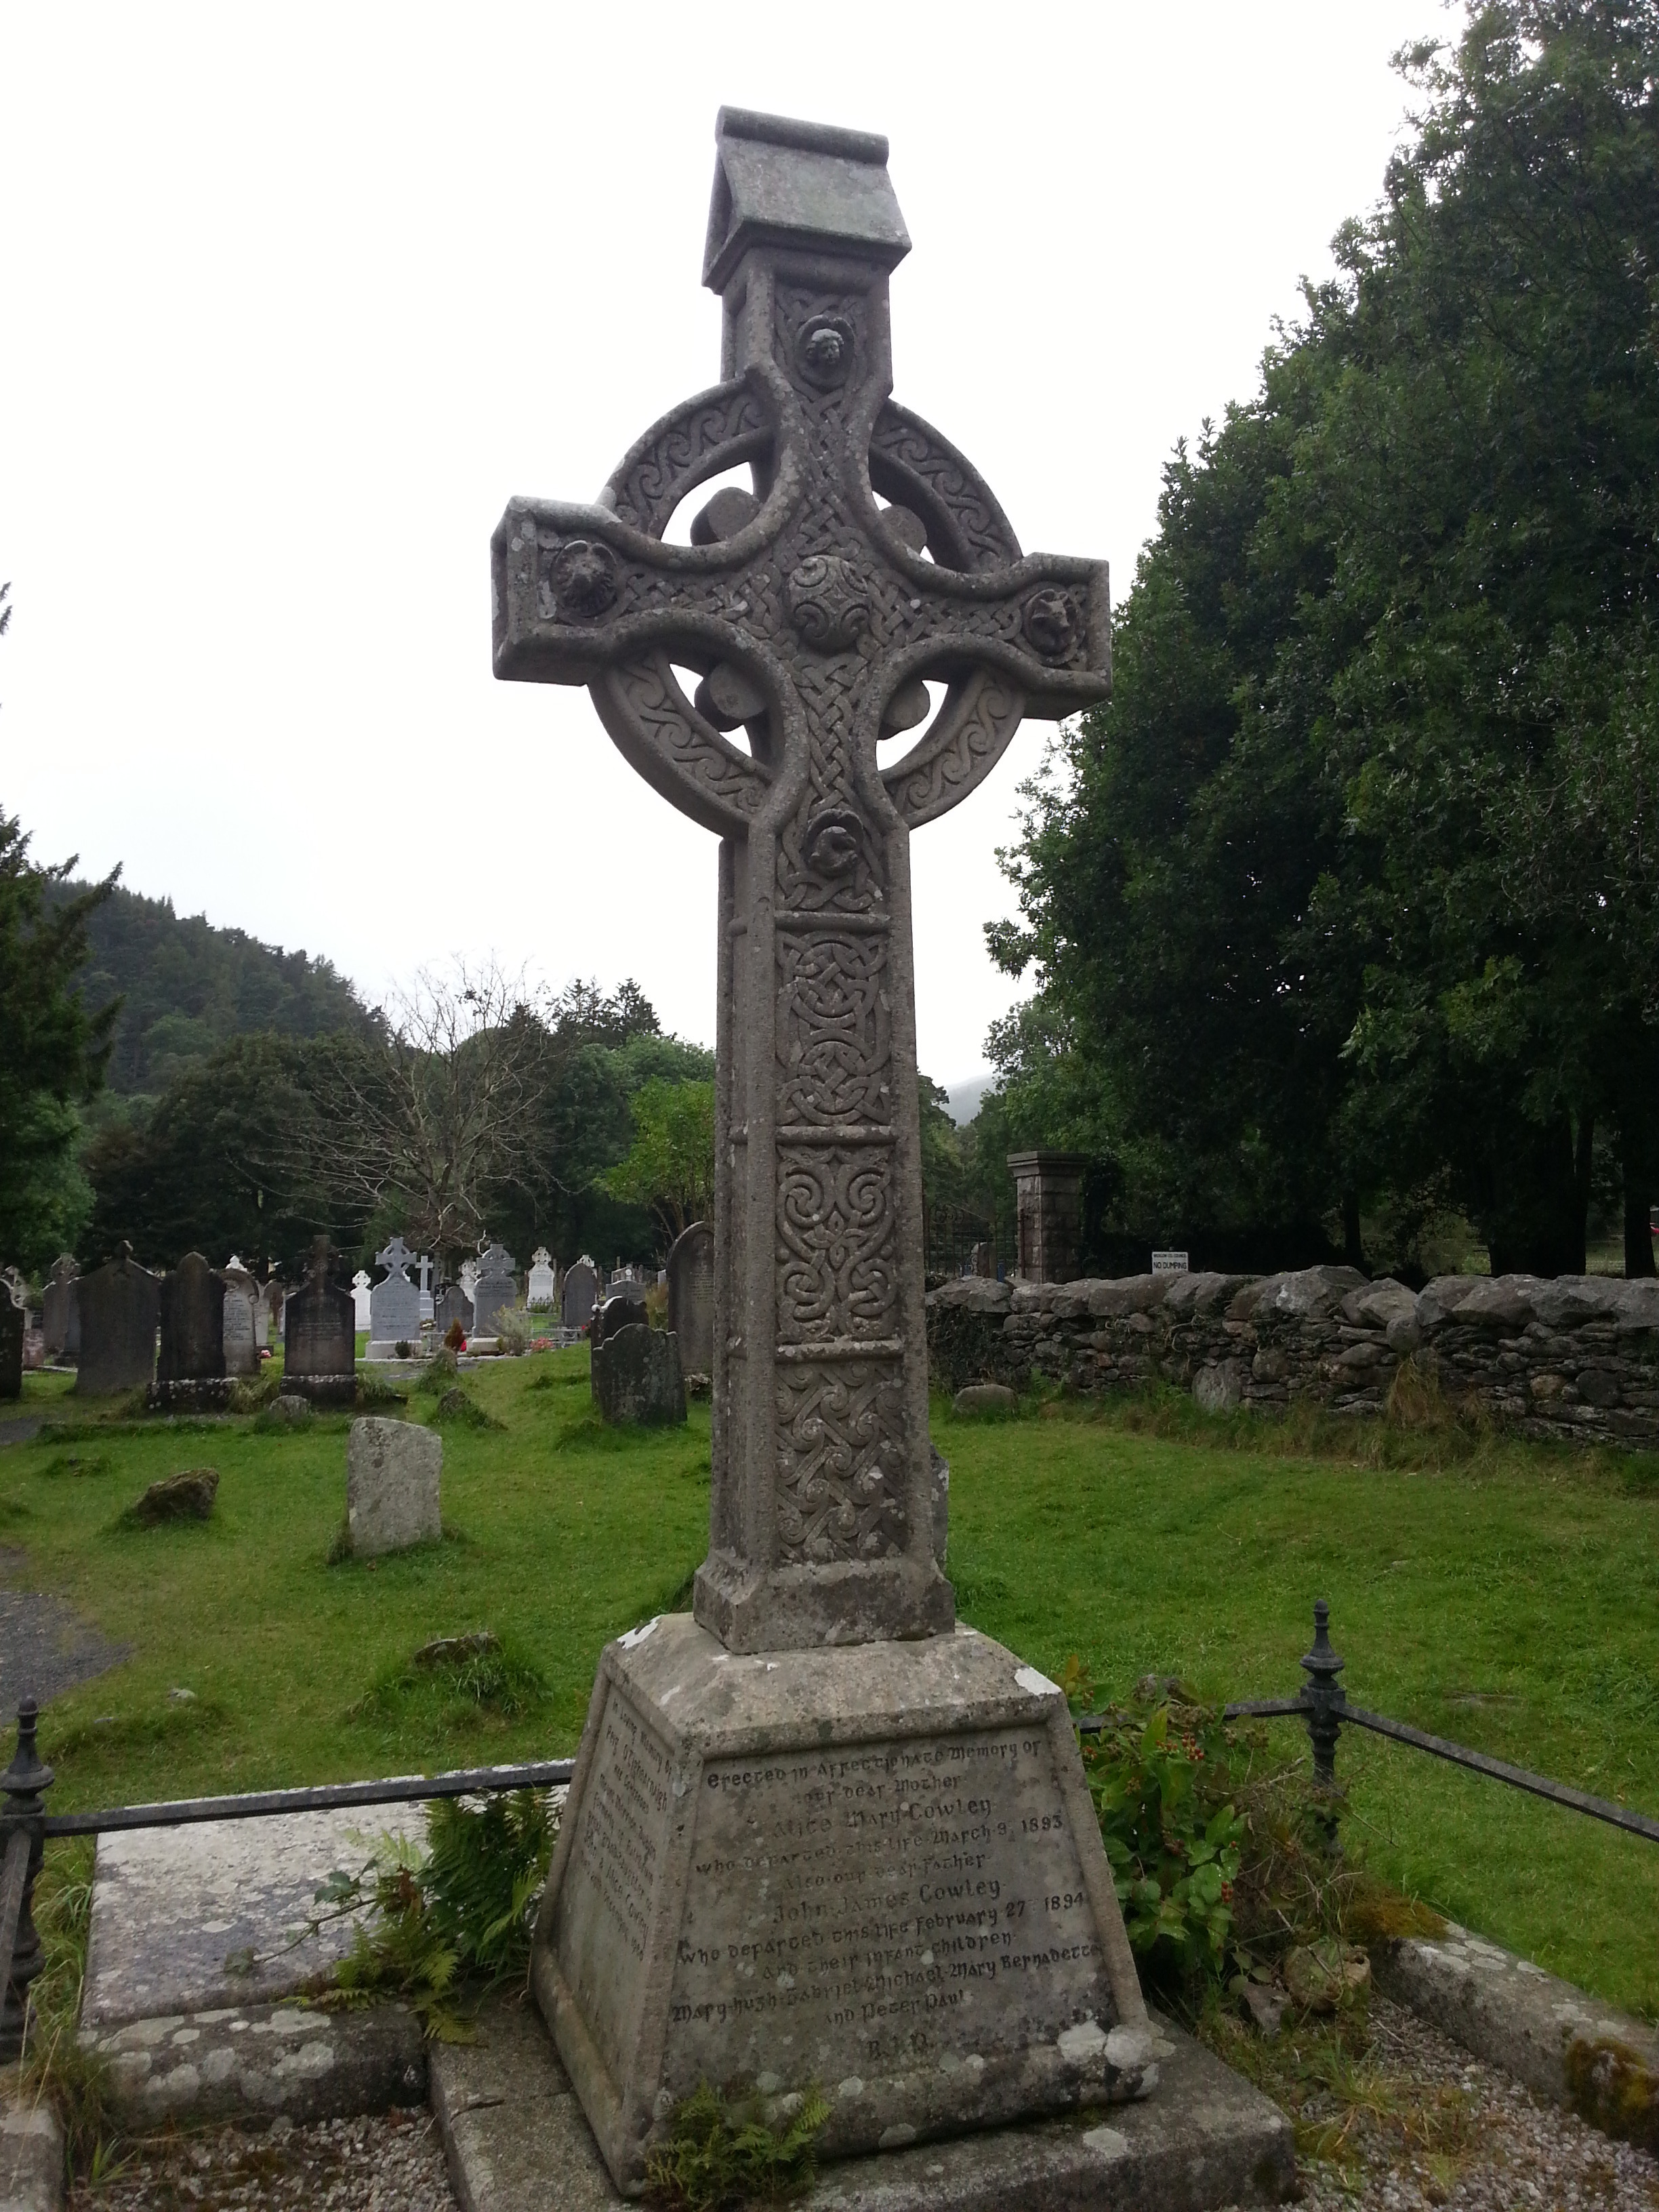 A celtic cross - a typically shaped cross with a circle, combining christian and celtic culture